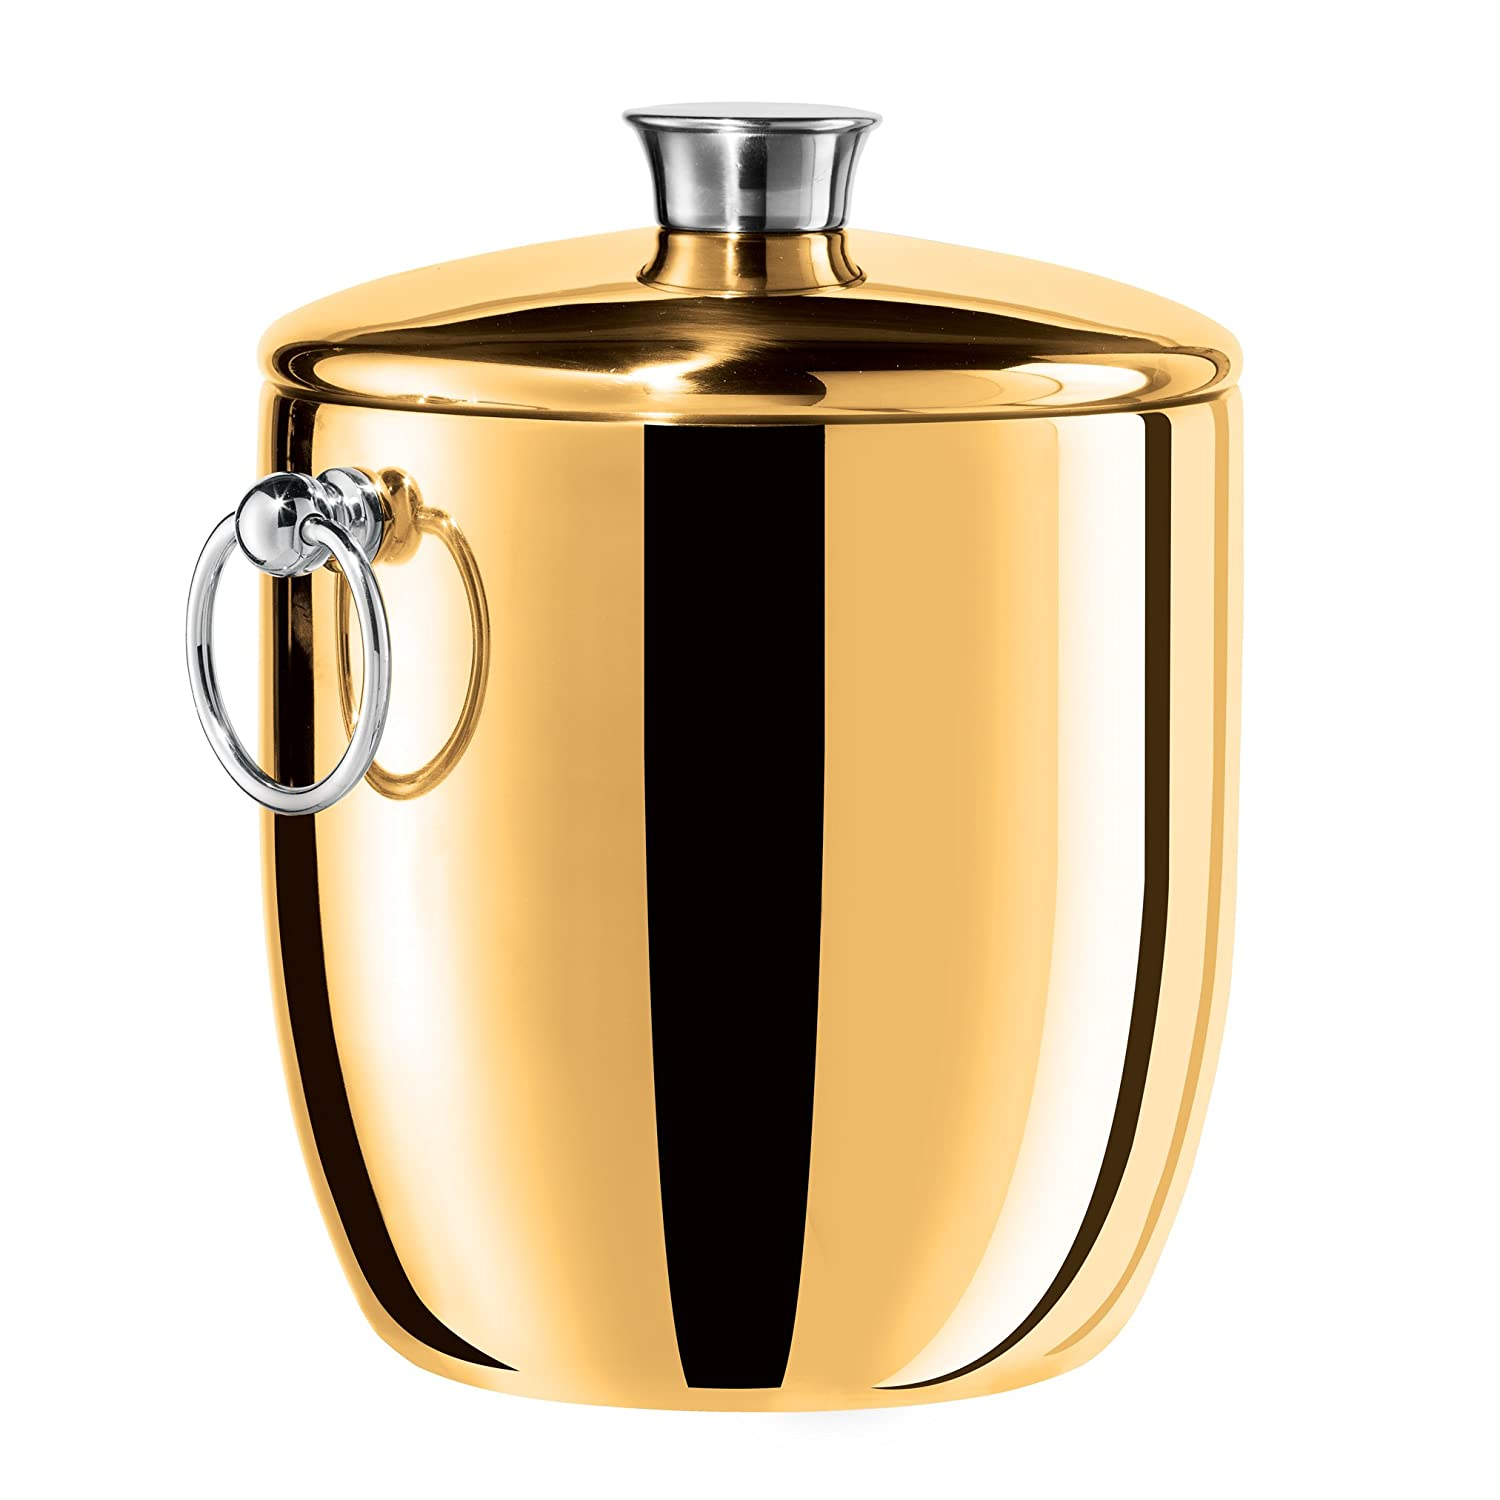 Oggi Copper Plated Mirror Finish Stainless Steel Ice Bucket with Tongs, 3 quart 7446.12